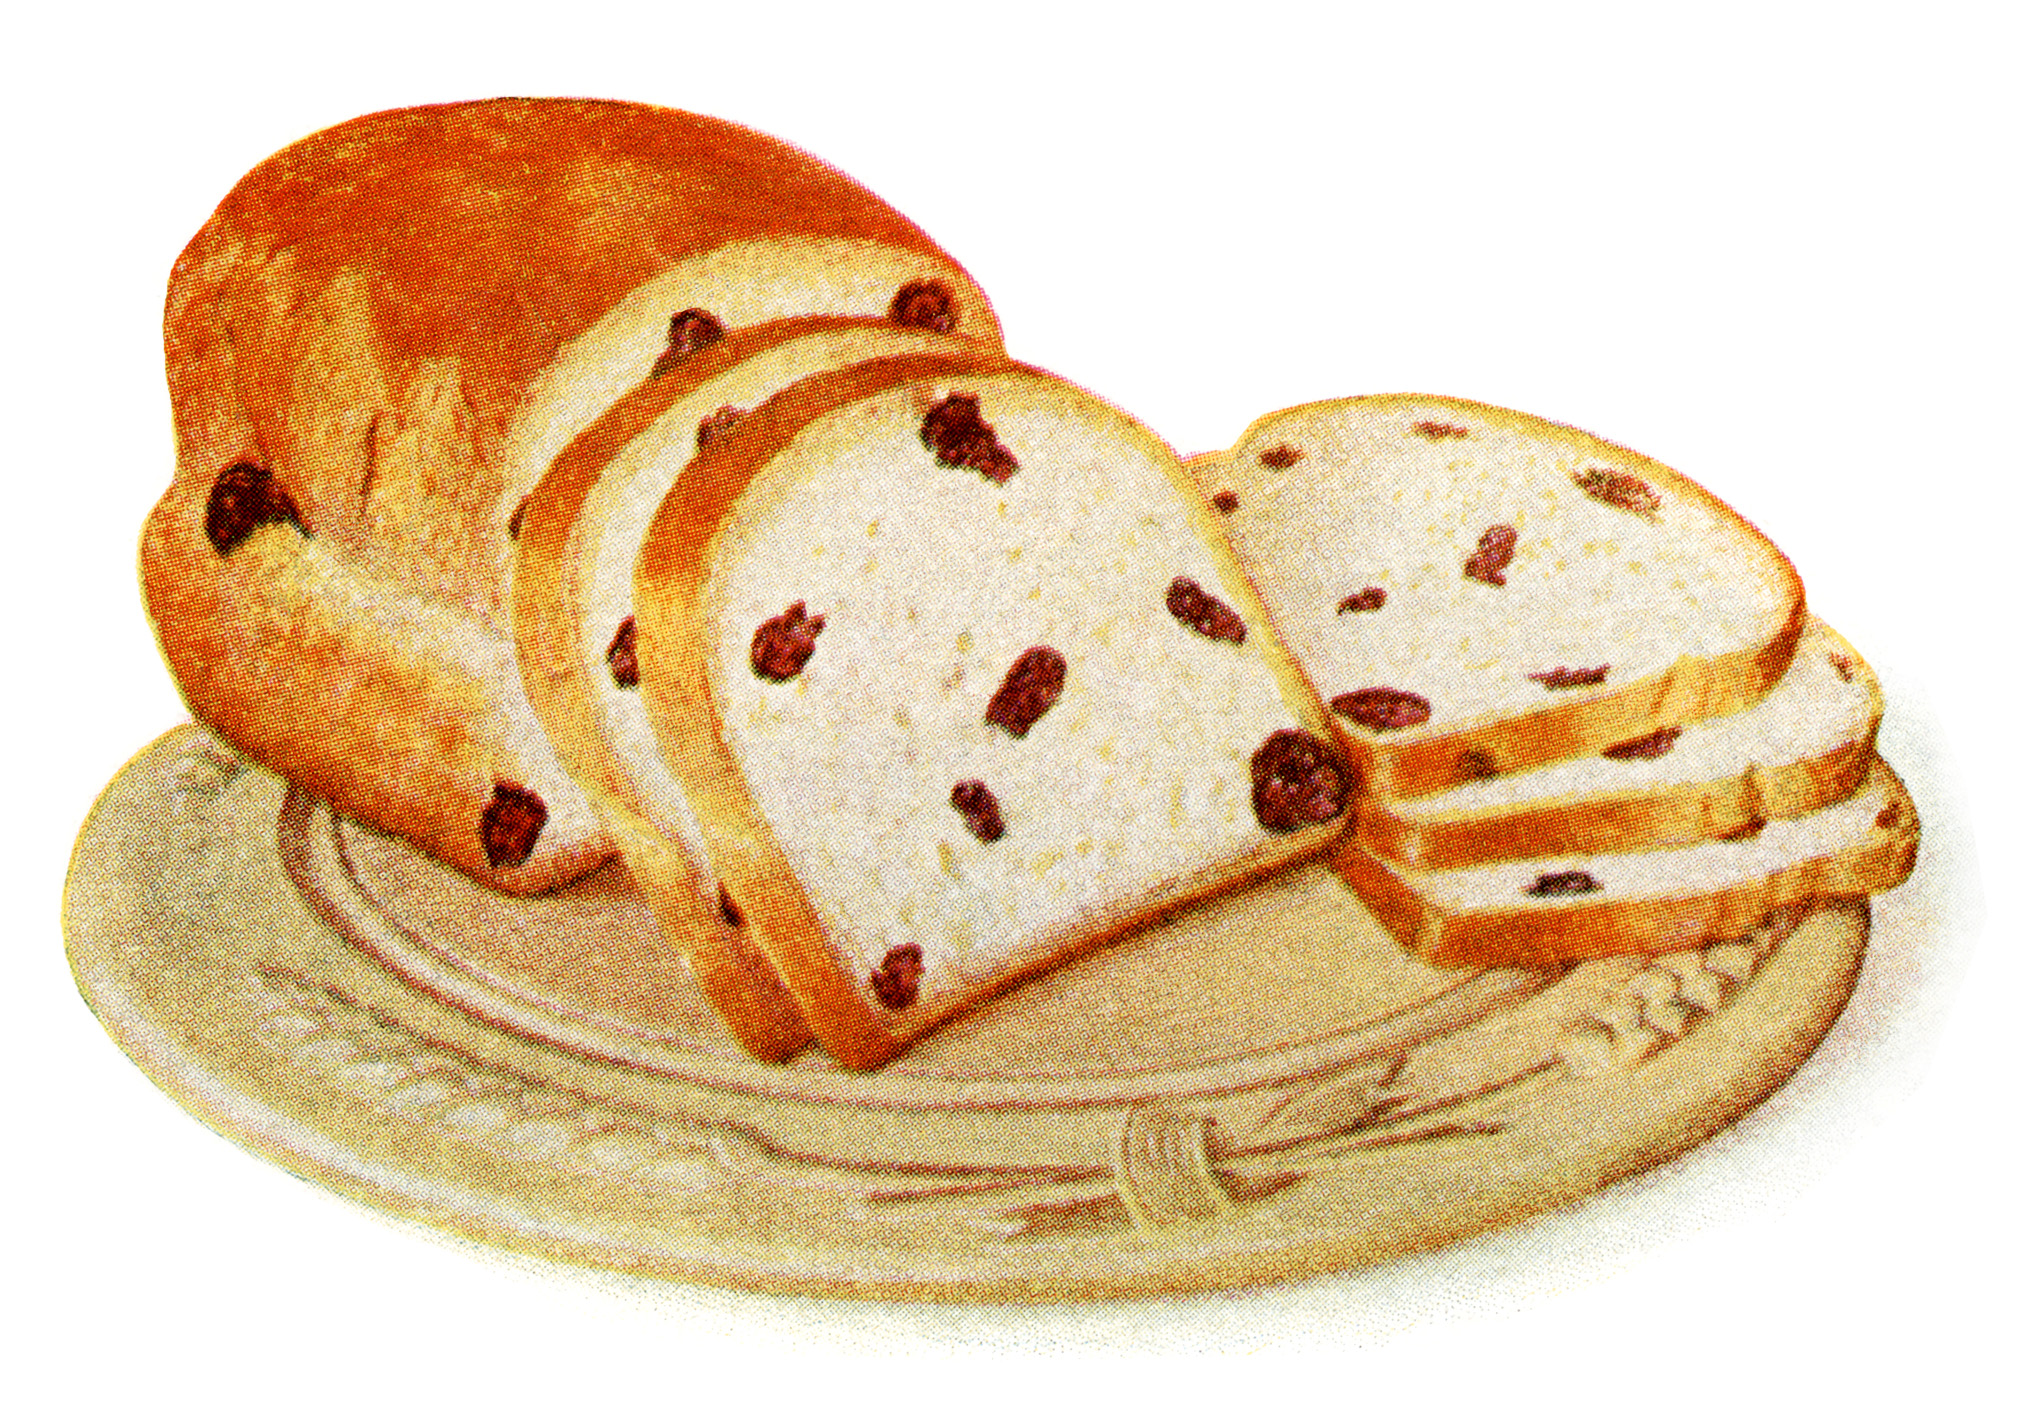 clip art images baked goods - photo #46